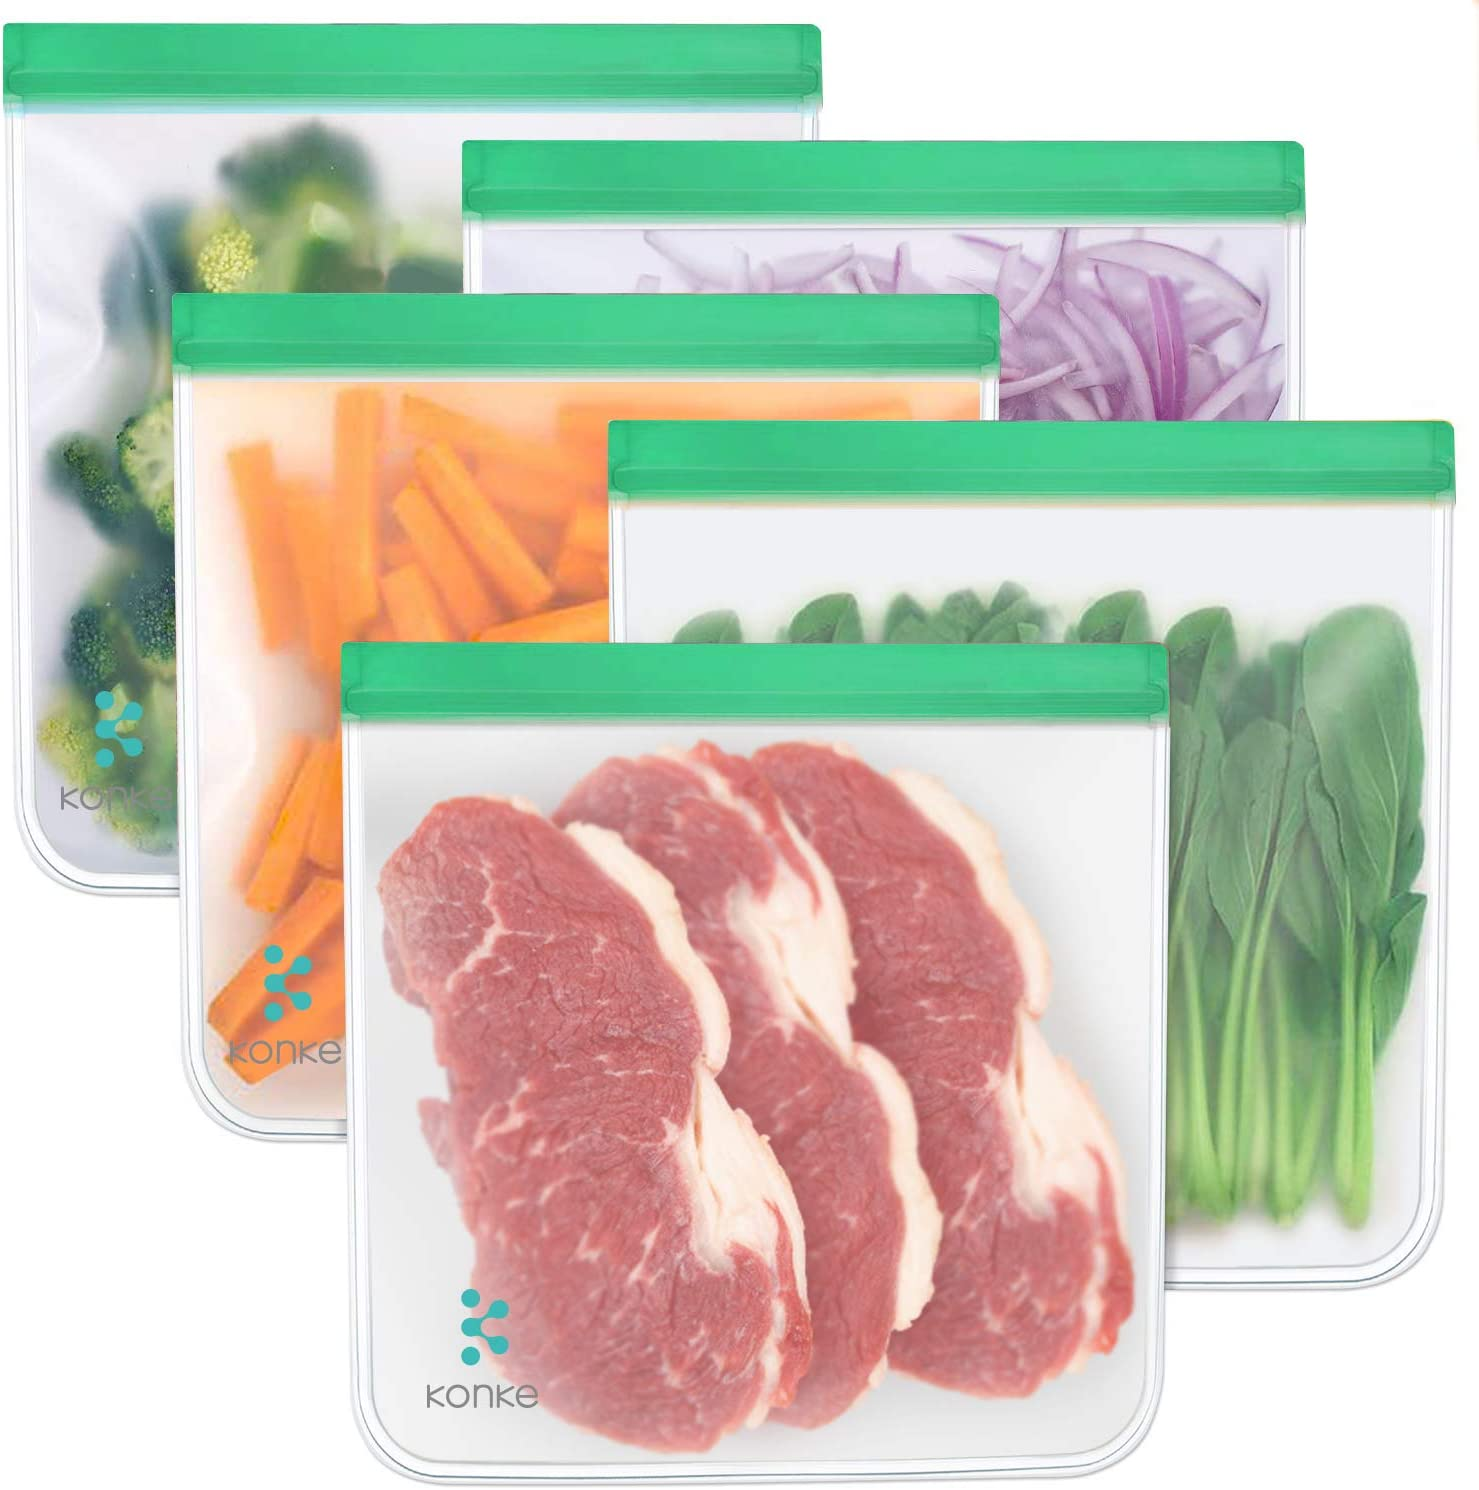 Reusable Food Storage Bags - 1 Gallon Freezer Ziplock Bags 5 PACK, LEAKPROOF Gallon Storage Bags EXTRA THICK for Marinate Meats, Fruit, Cereal, Sandwich, Snack, Travel Items, Meal Prep, Home Organizat